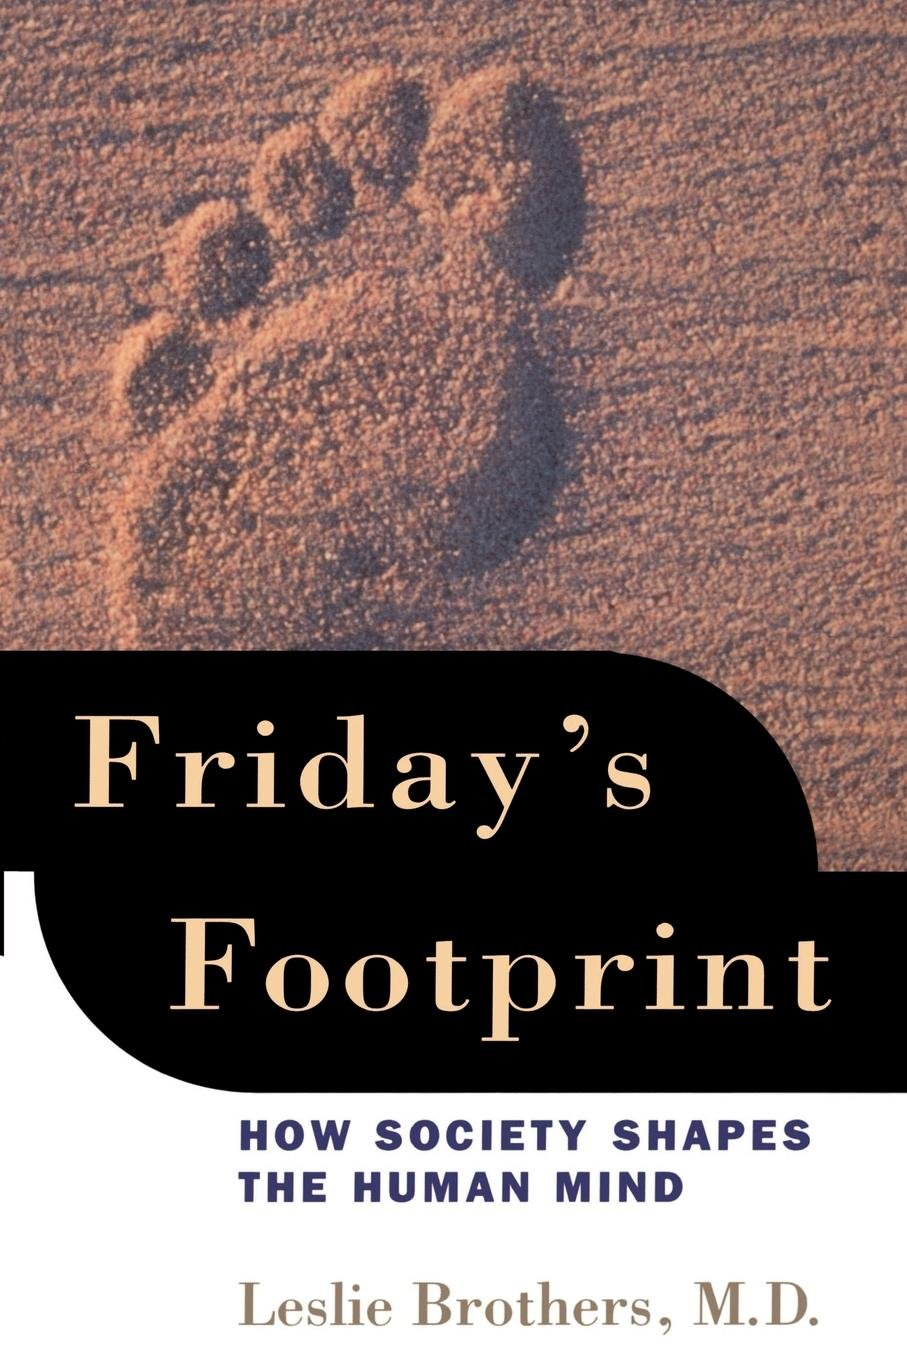 Friday's Footprint: How Society Shapes the Human Mind